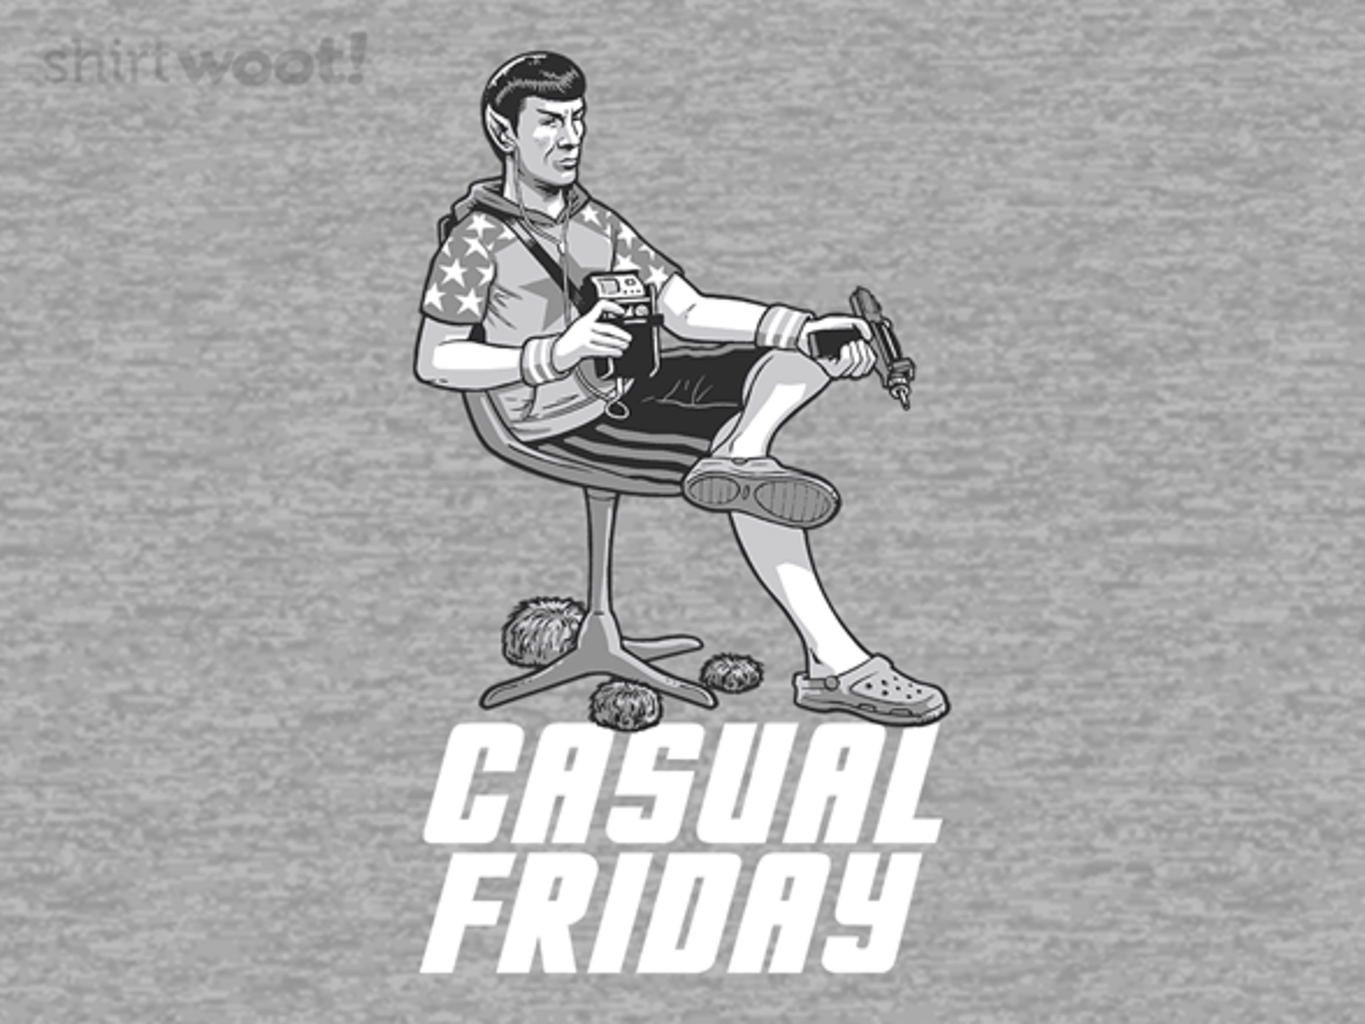 Woot!: Live Long and Casual Friday